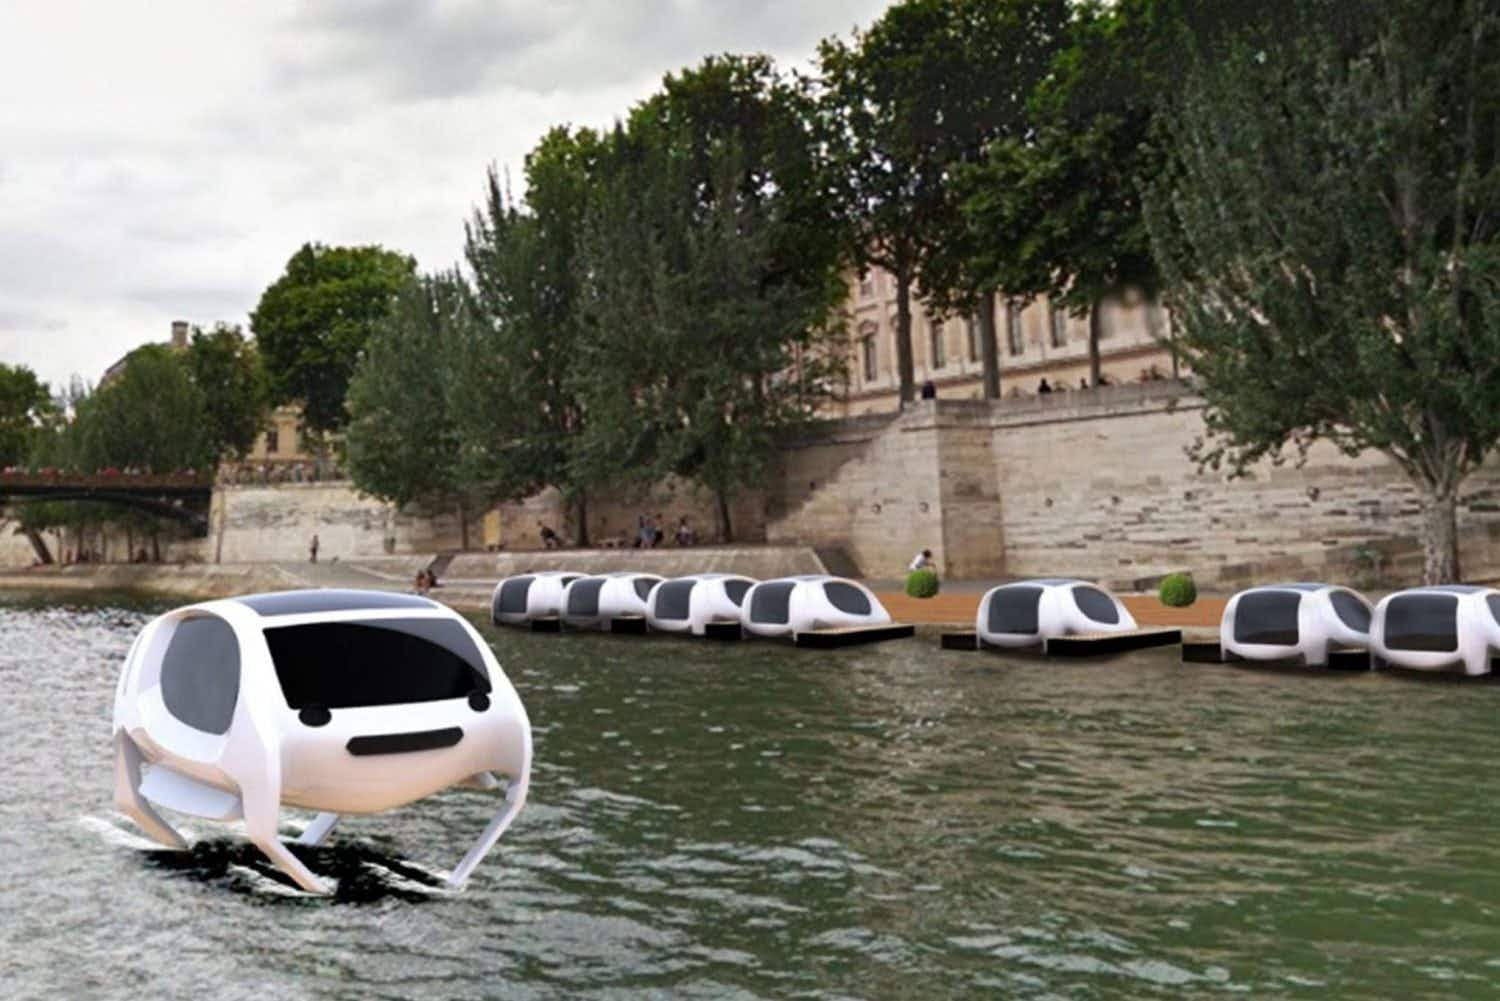 Watch: travel just got a lot more futuristic as flying water taxis are tested on the River Seine in Paris